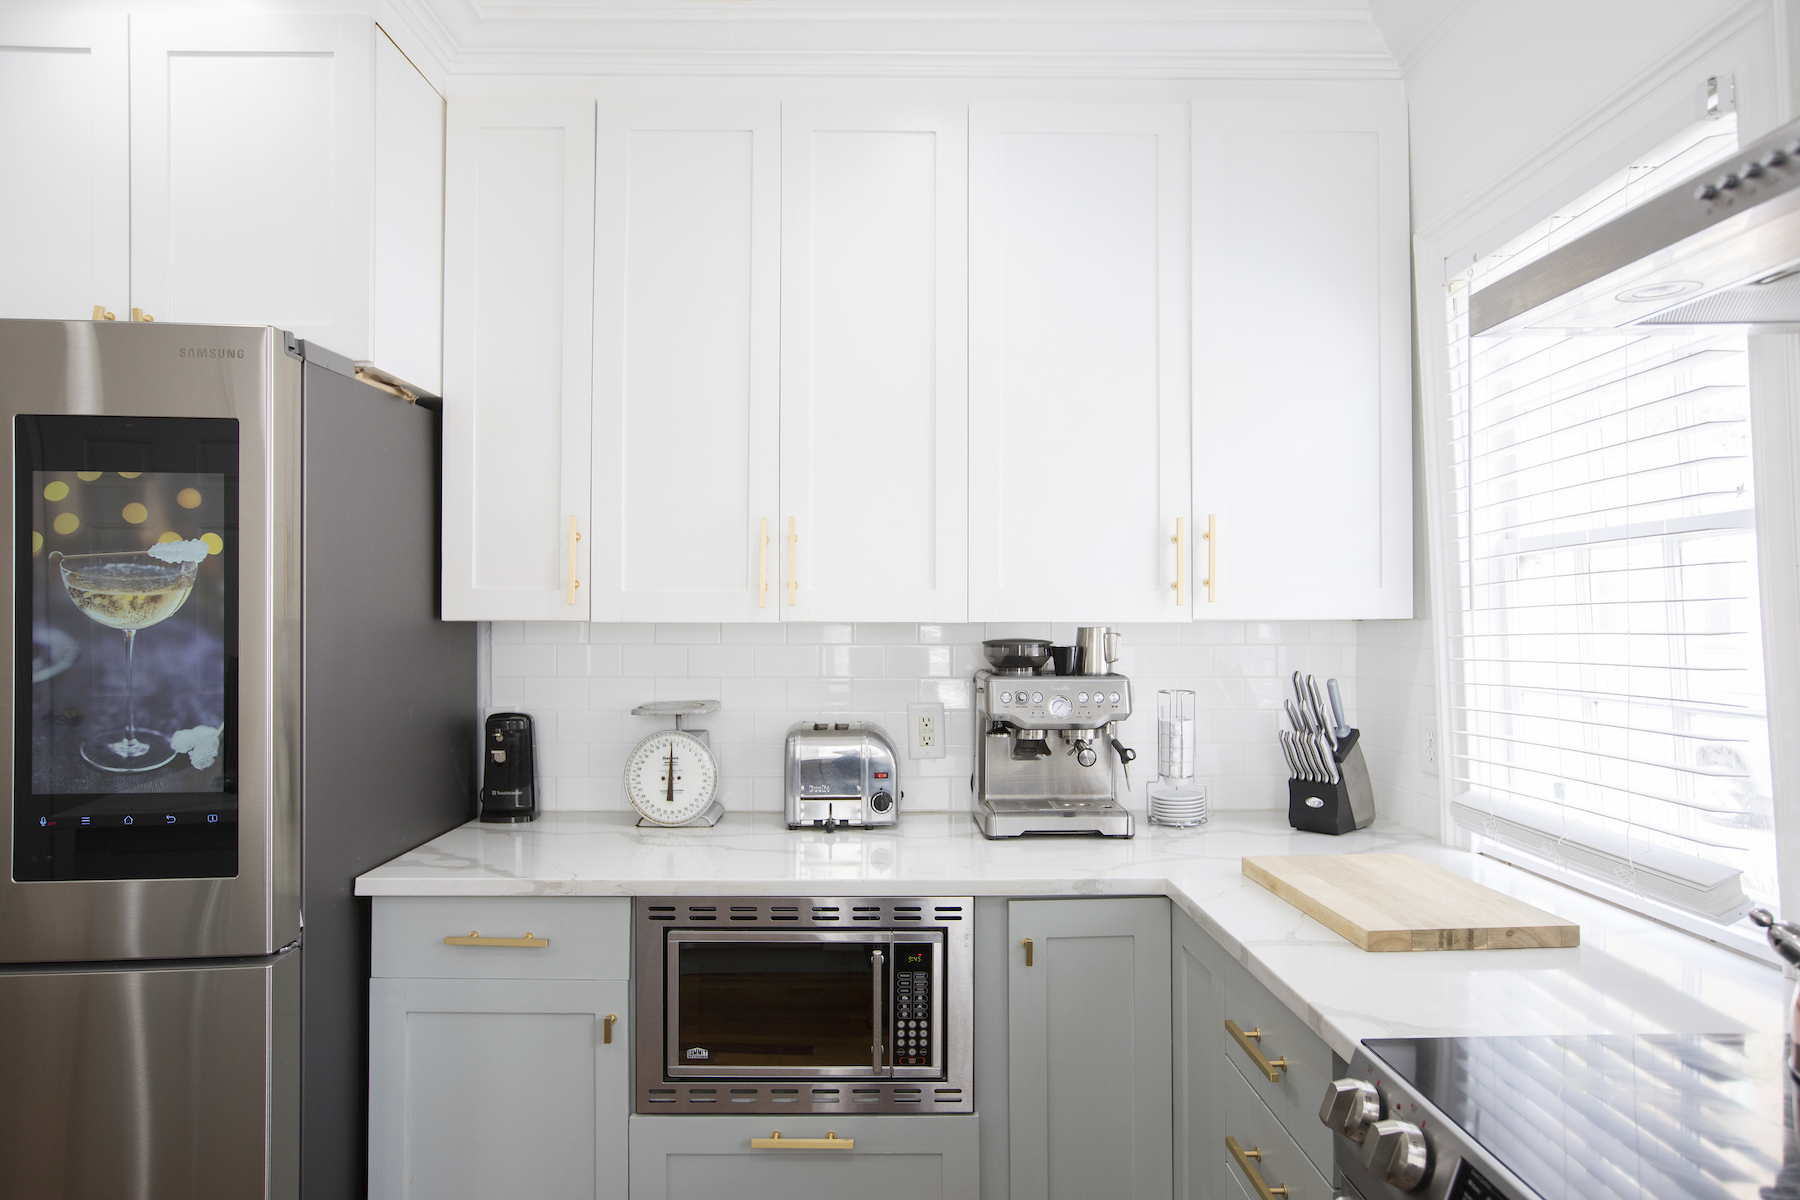 Kitchen Cabinet Trends 2019, white Shaker style cabinets in kitchen